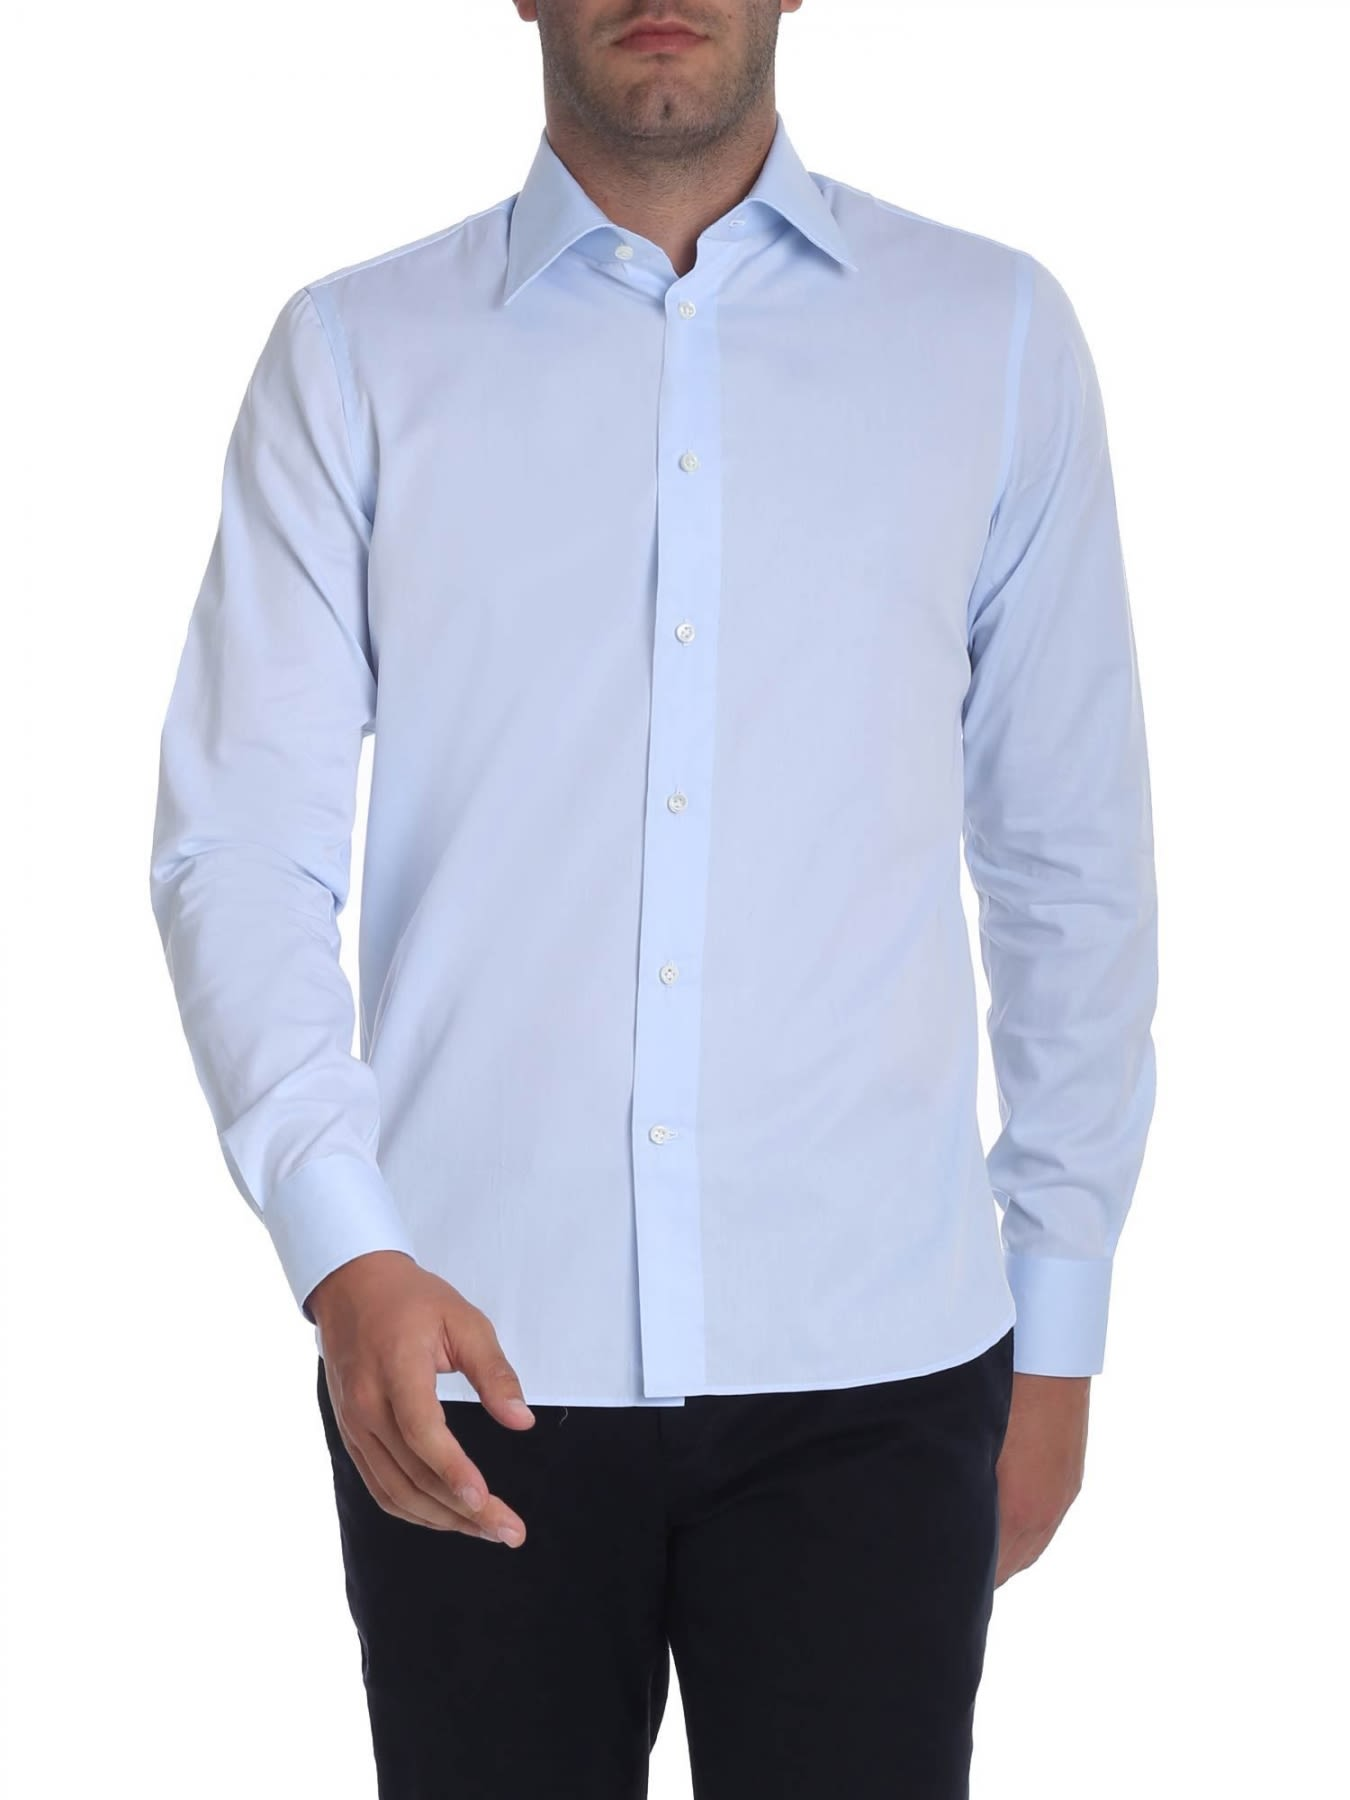 G. INGLESE Cotton Shirt in Heavenly